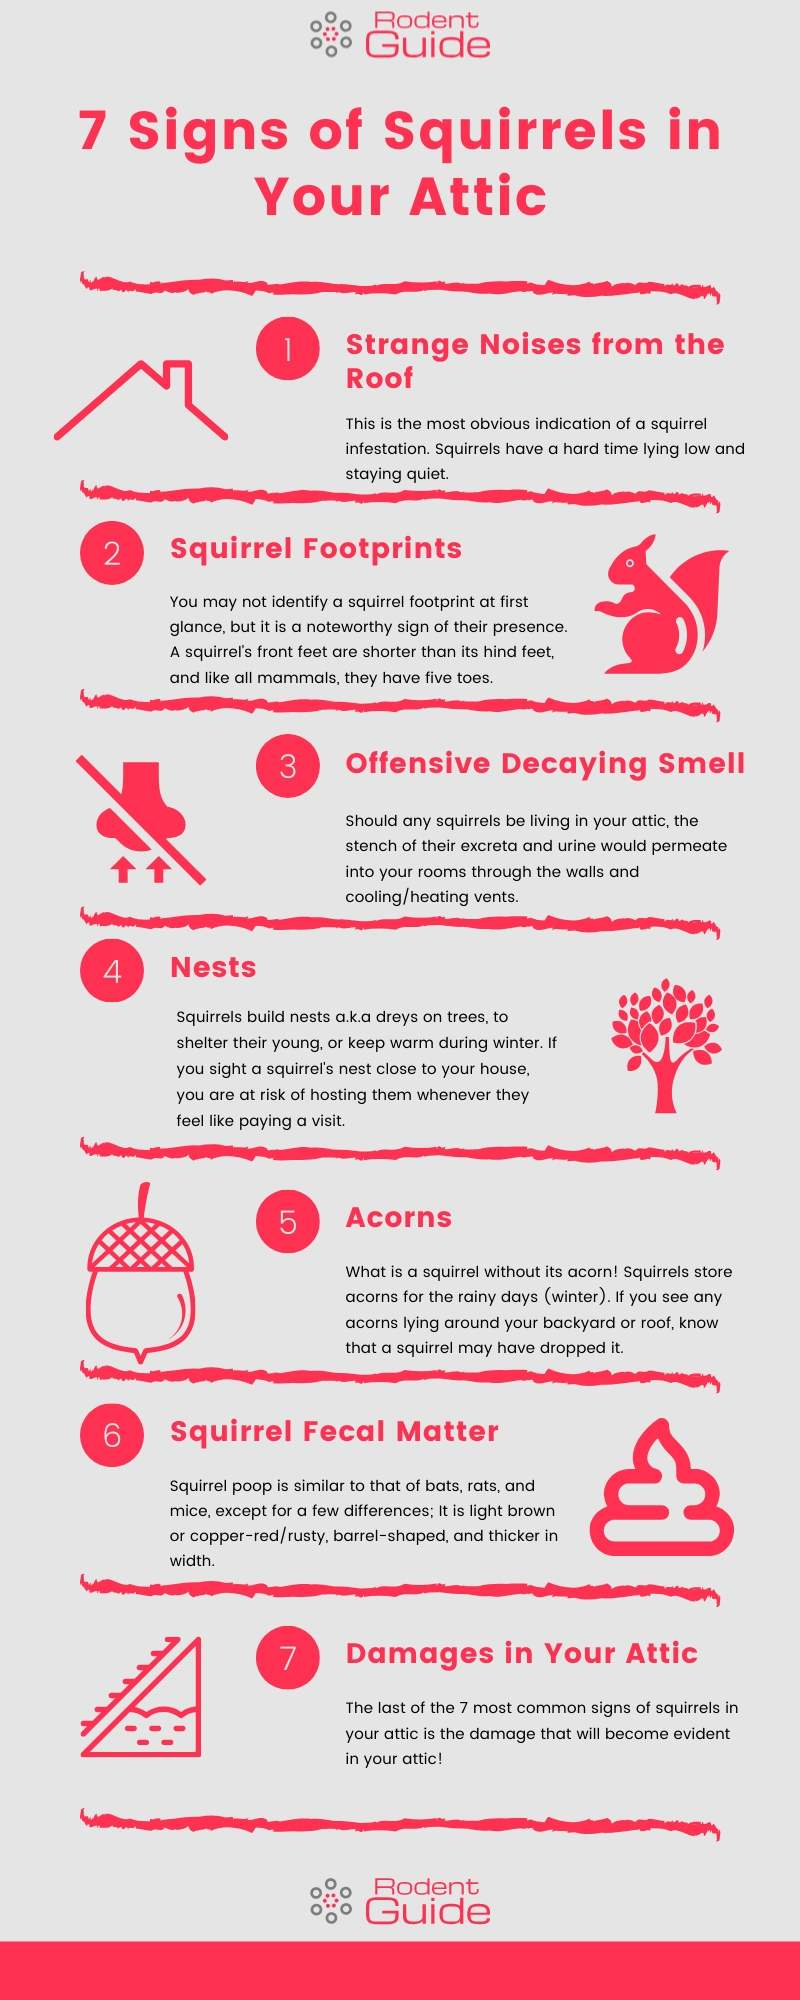 7 Signs of Squirrels in Your Attic Infographic